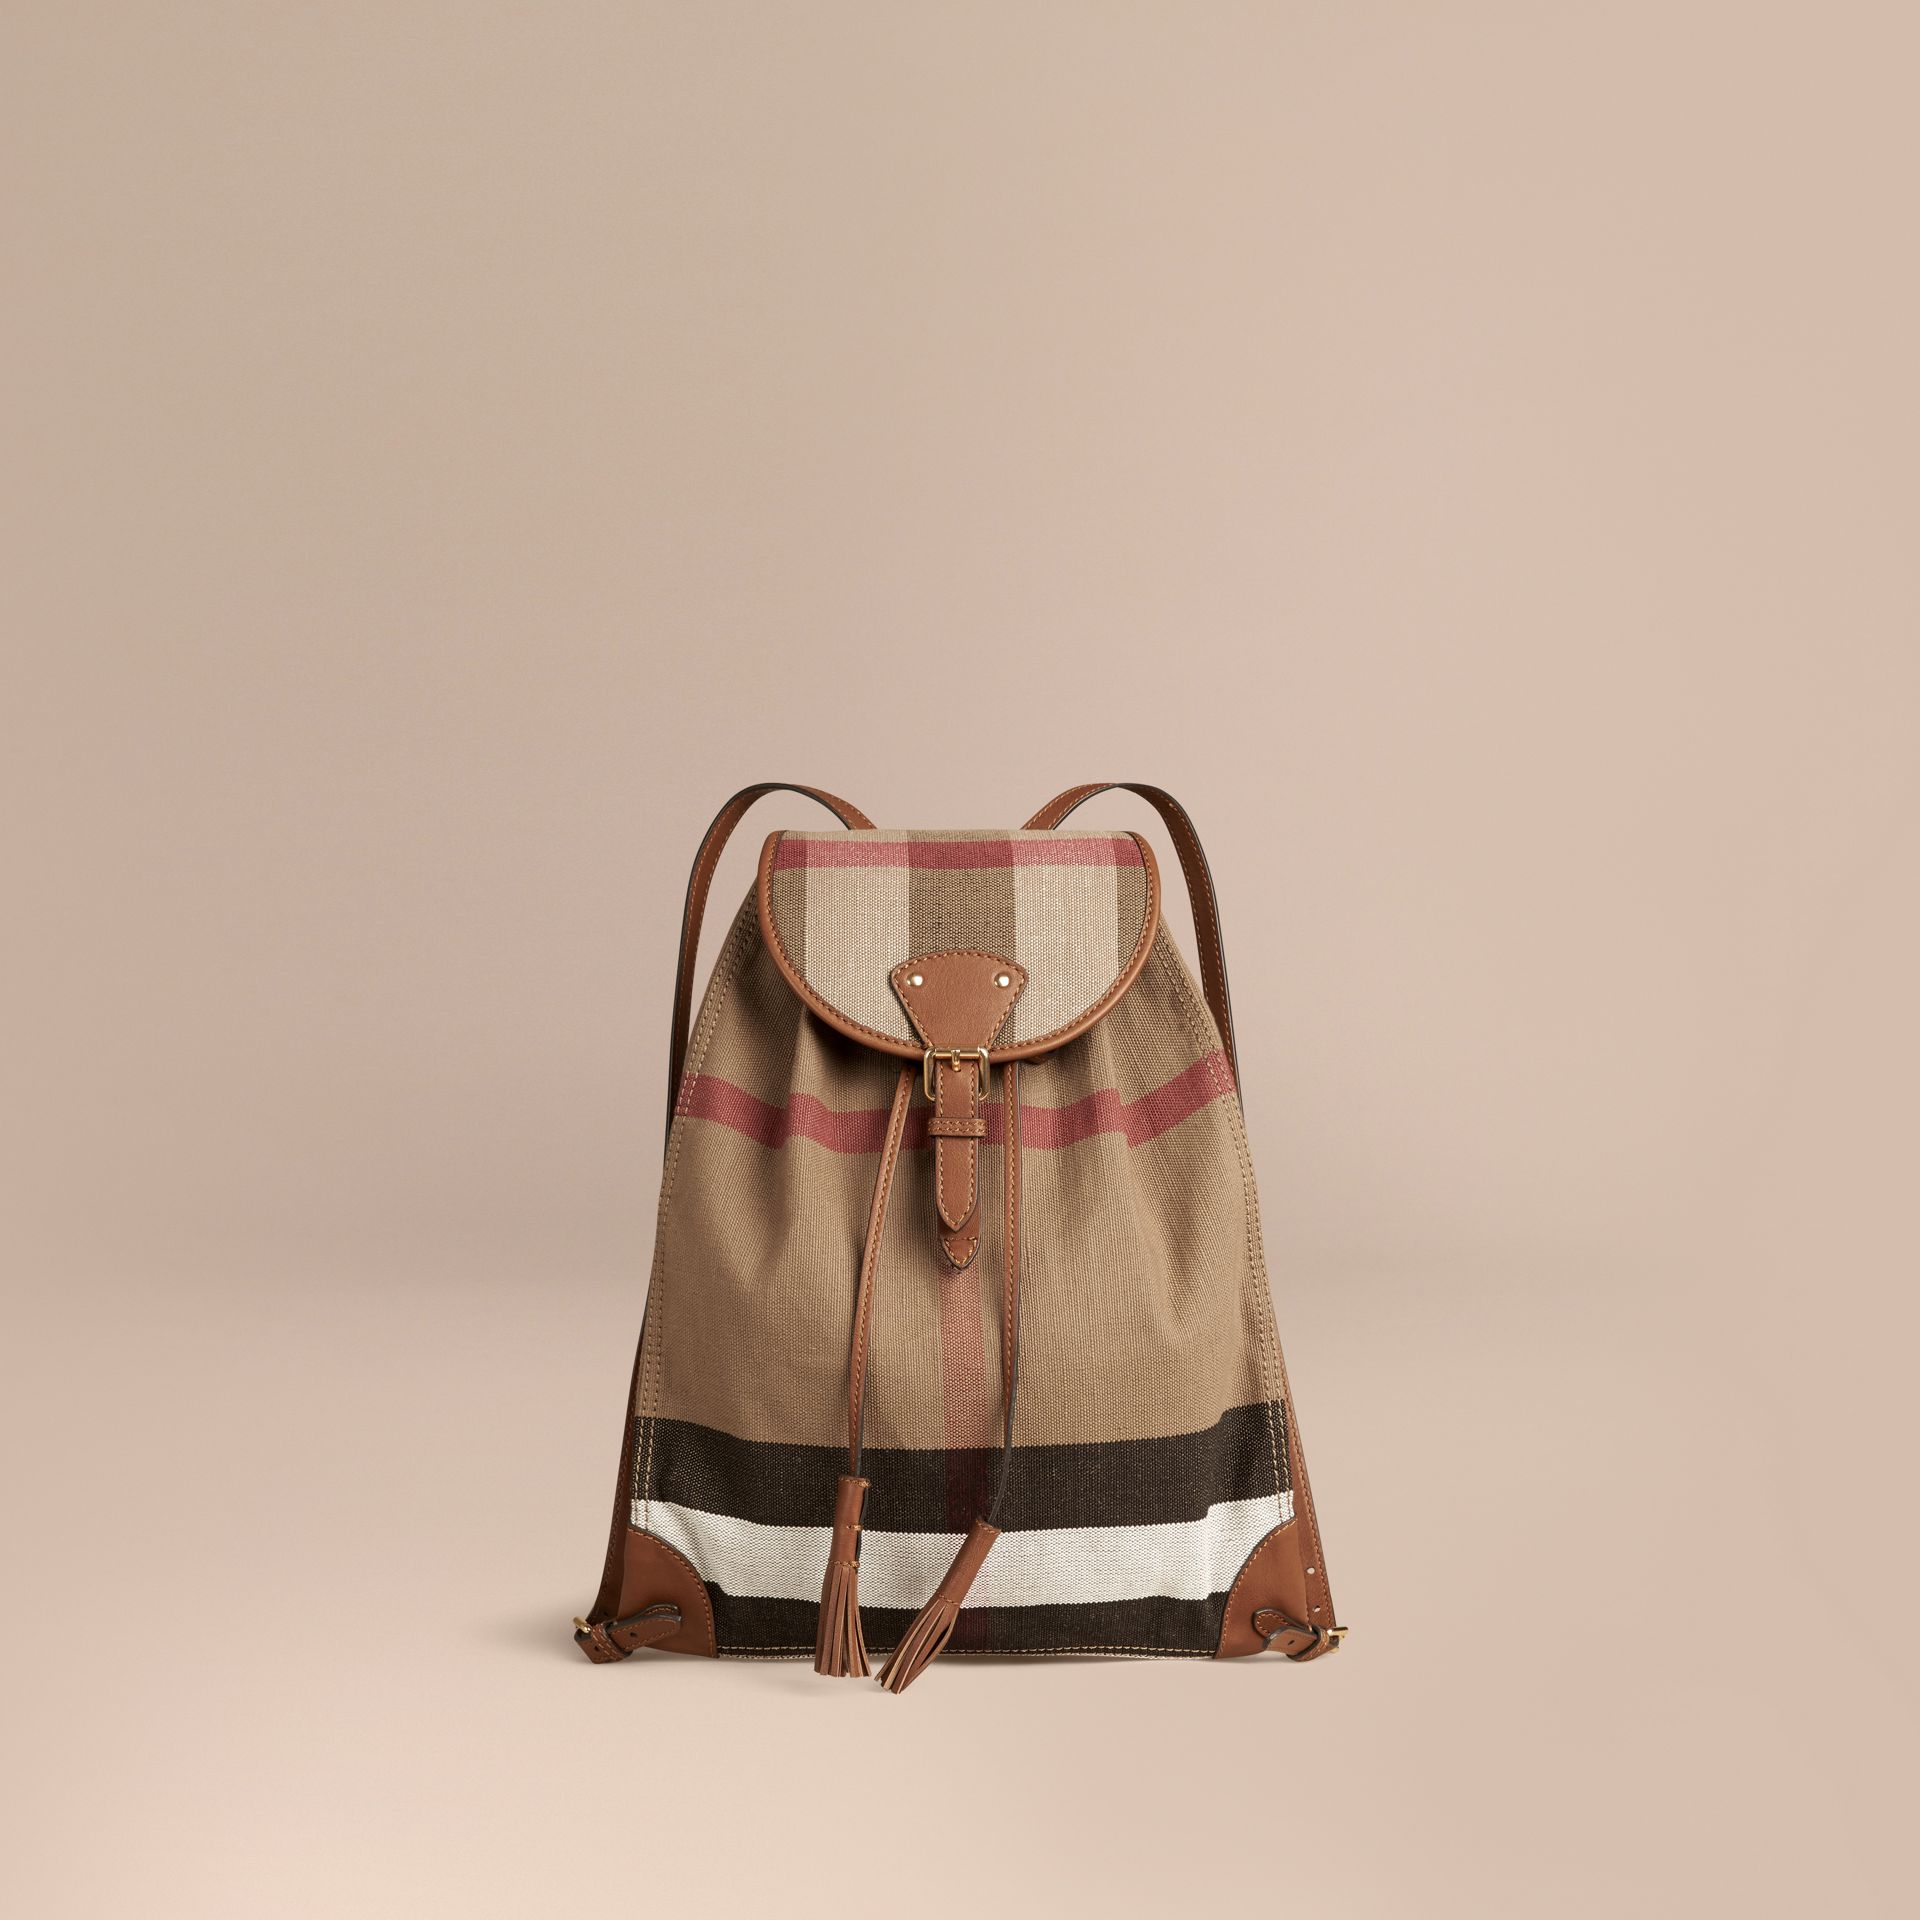 Tan Canvas Check Backpack with Leather Trim Tan - gallery image 1